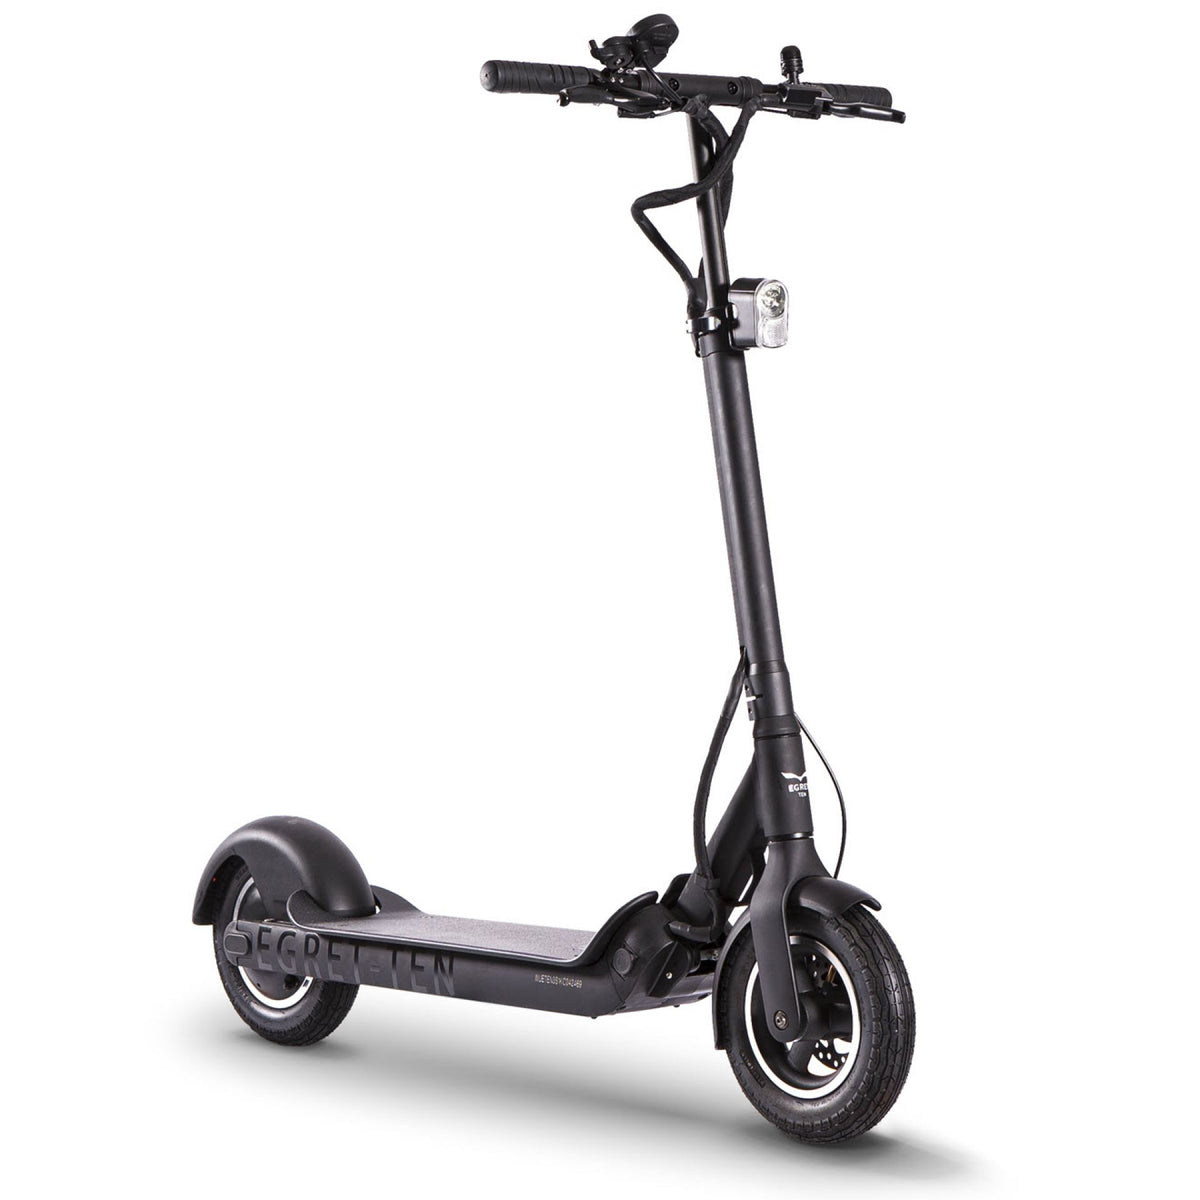 WALBERG EGRET-TEN V3 X 48V Electric Scooter-Electric Scooters London